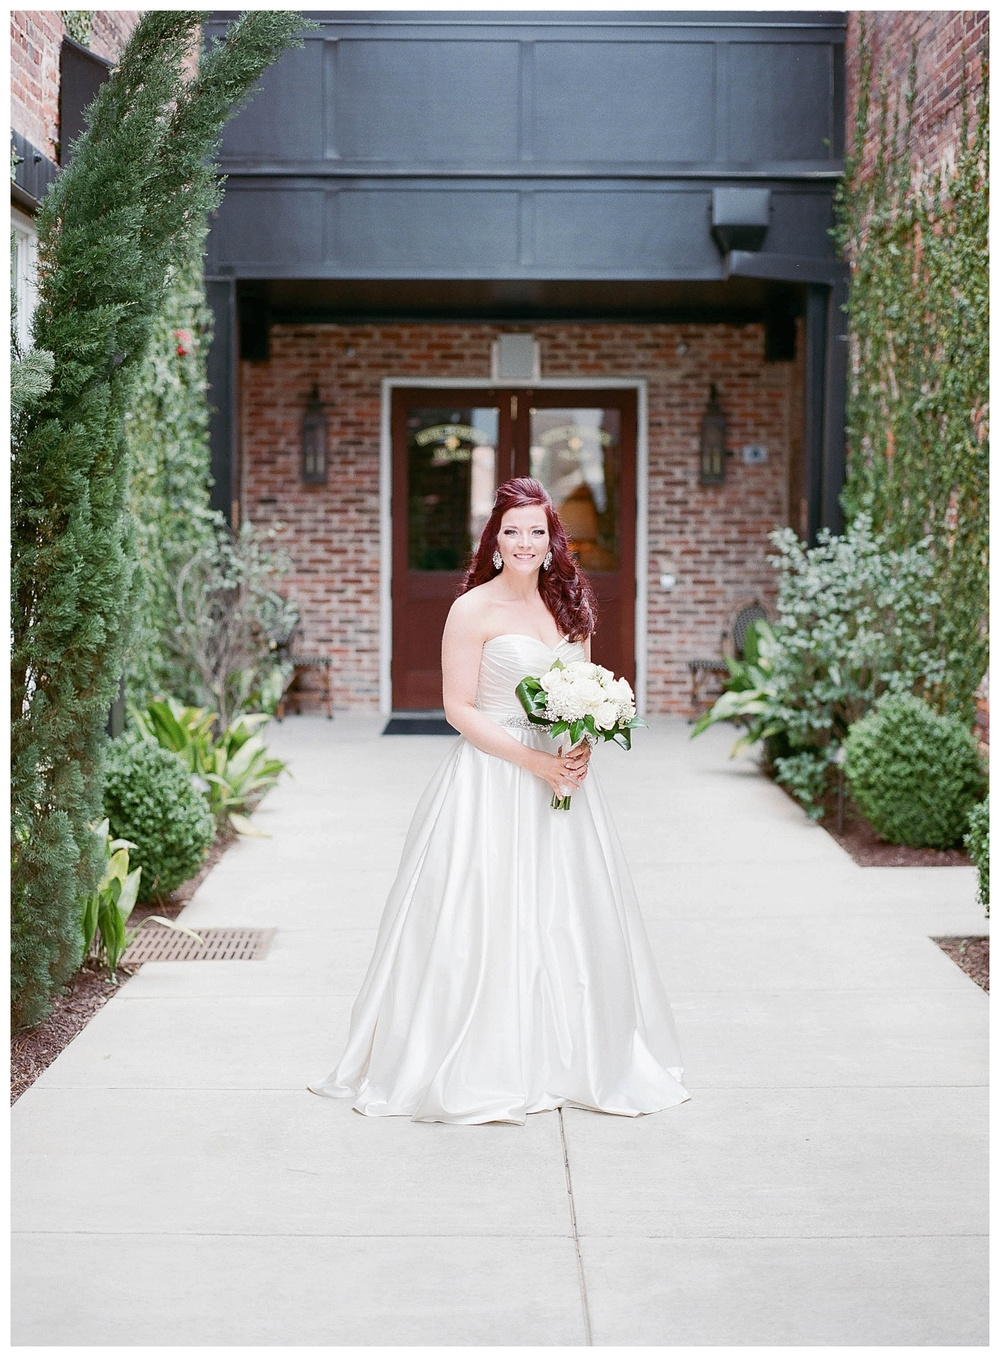 Bridal Portrait for wedding at Hotel Florence, SC